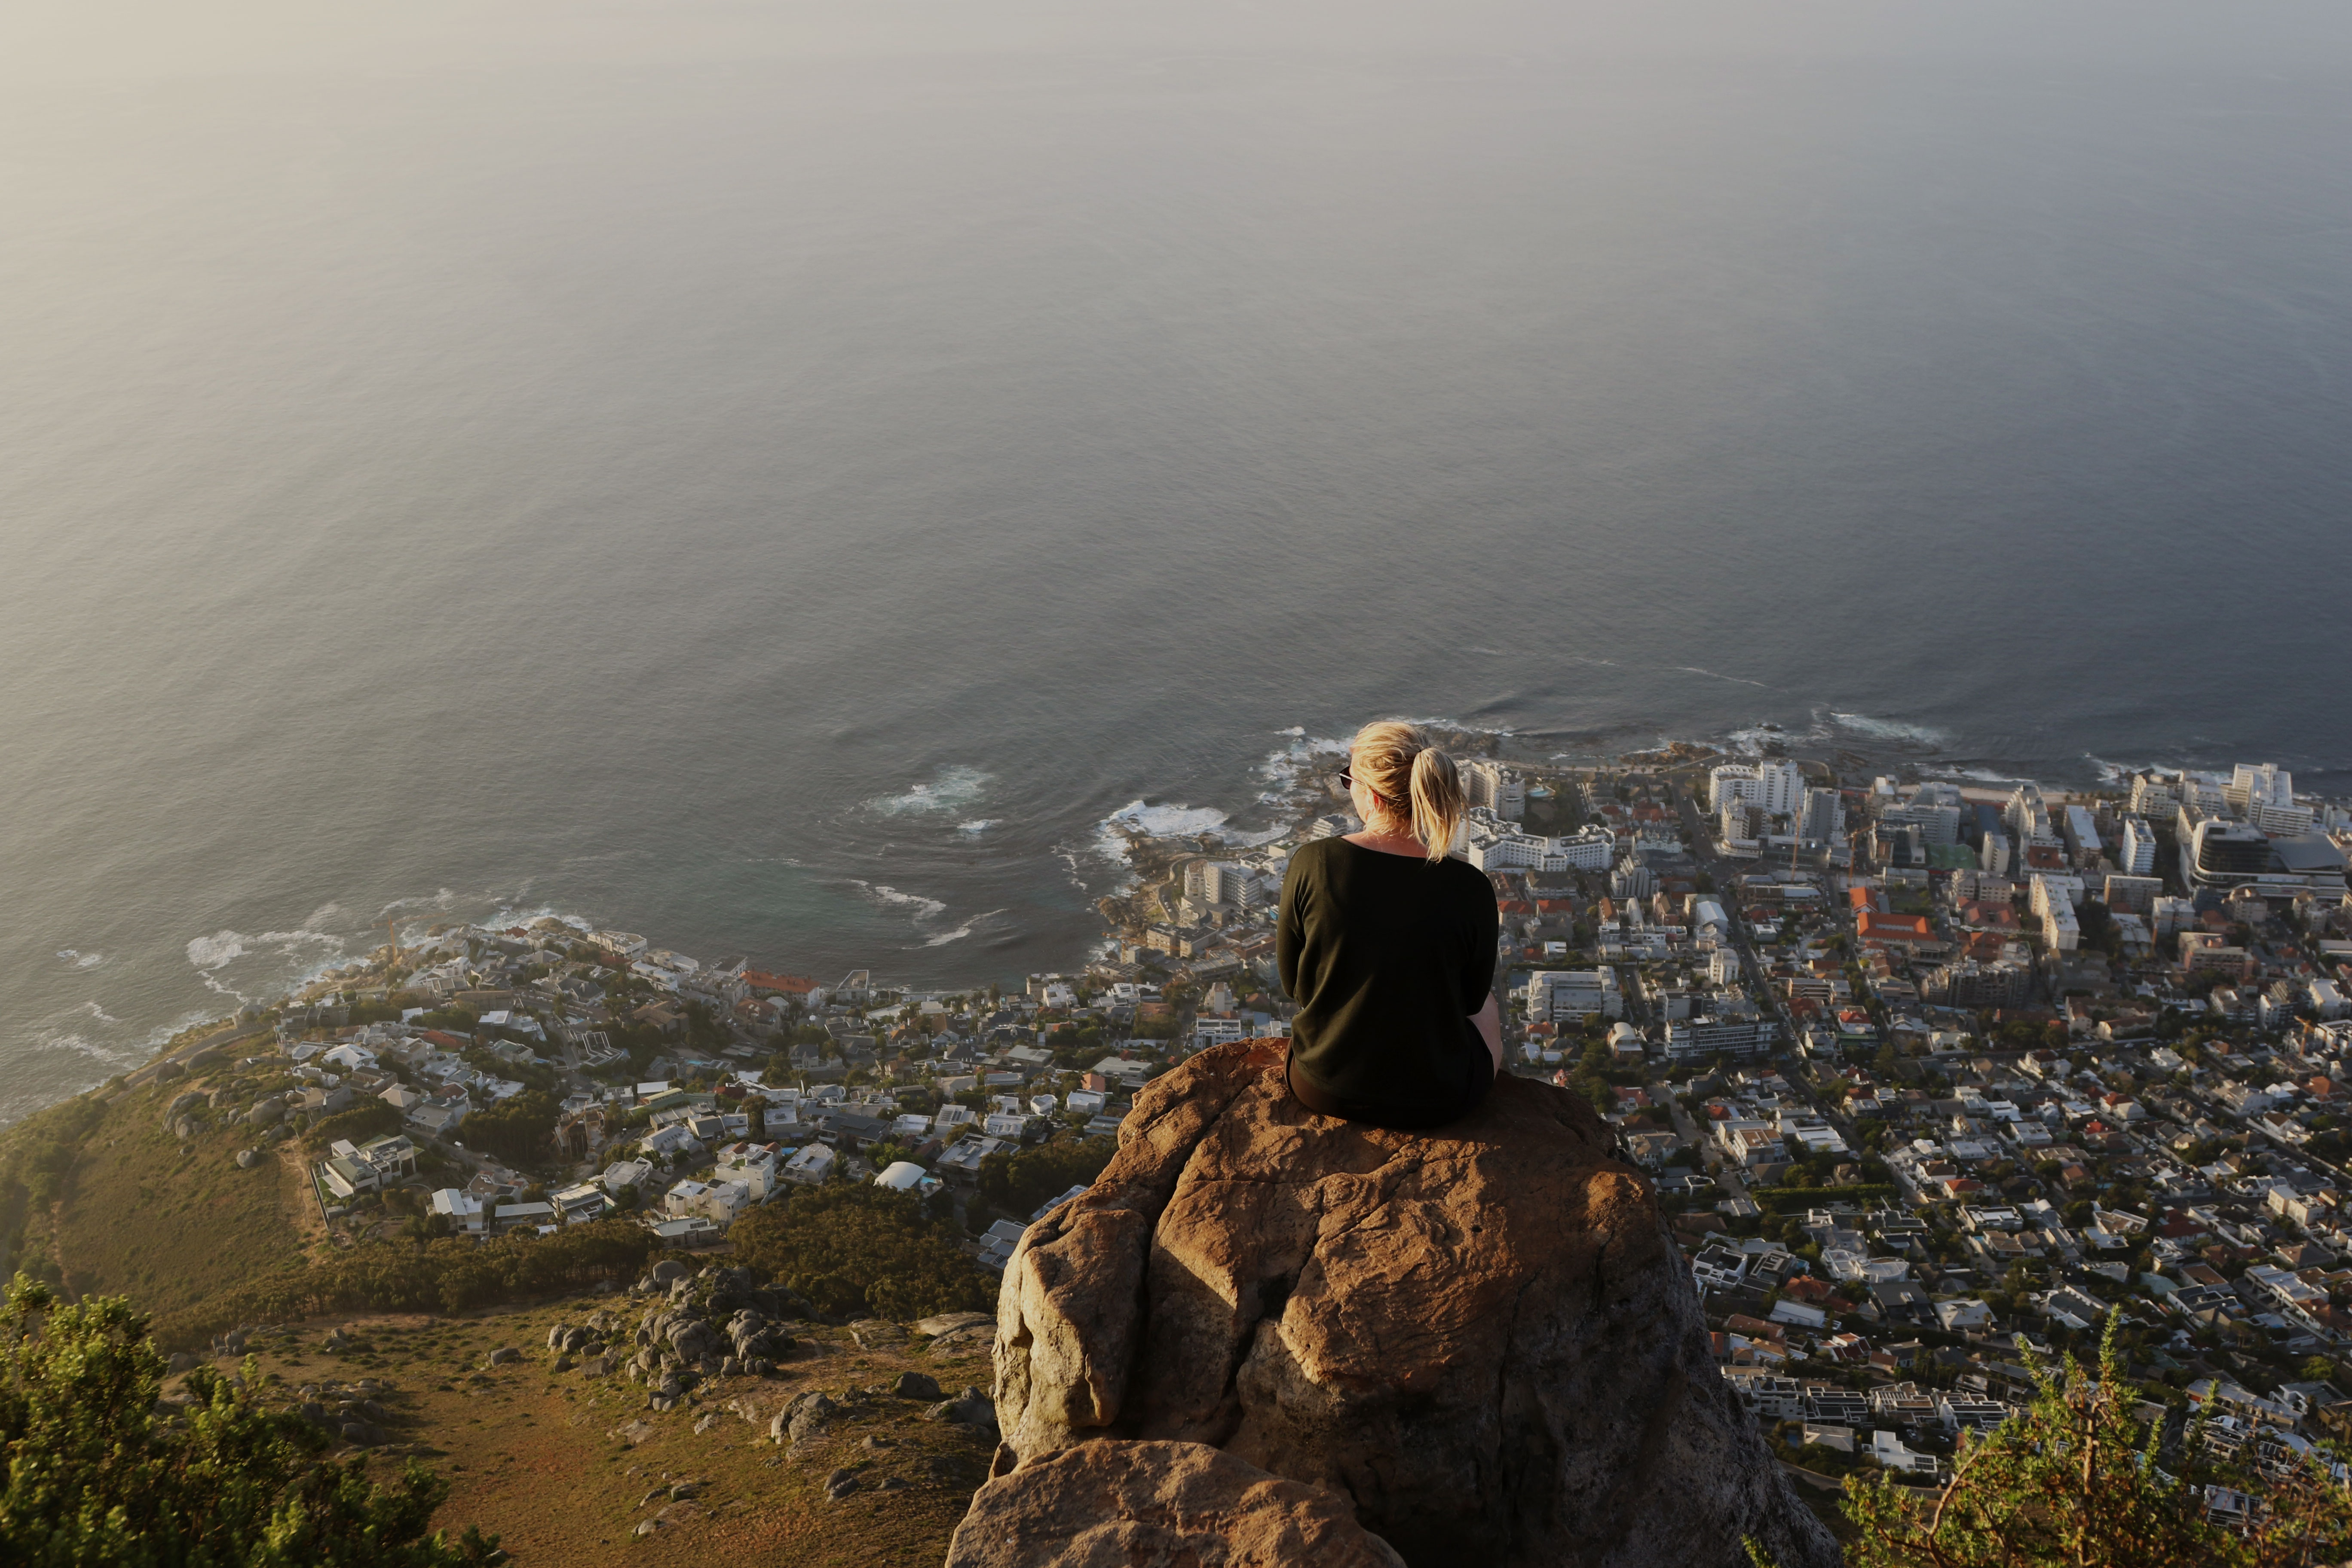 Cape Town Travel Guide - Ten things to do in Cape Town